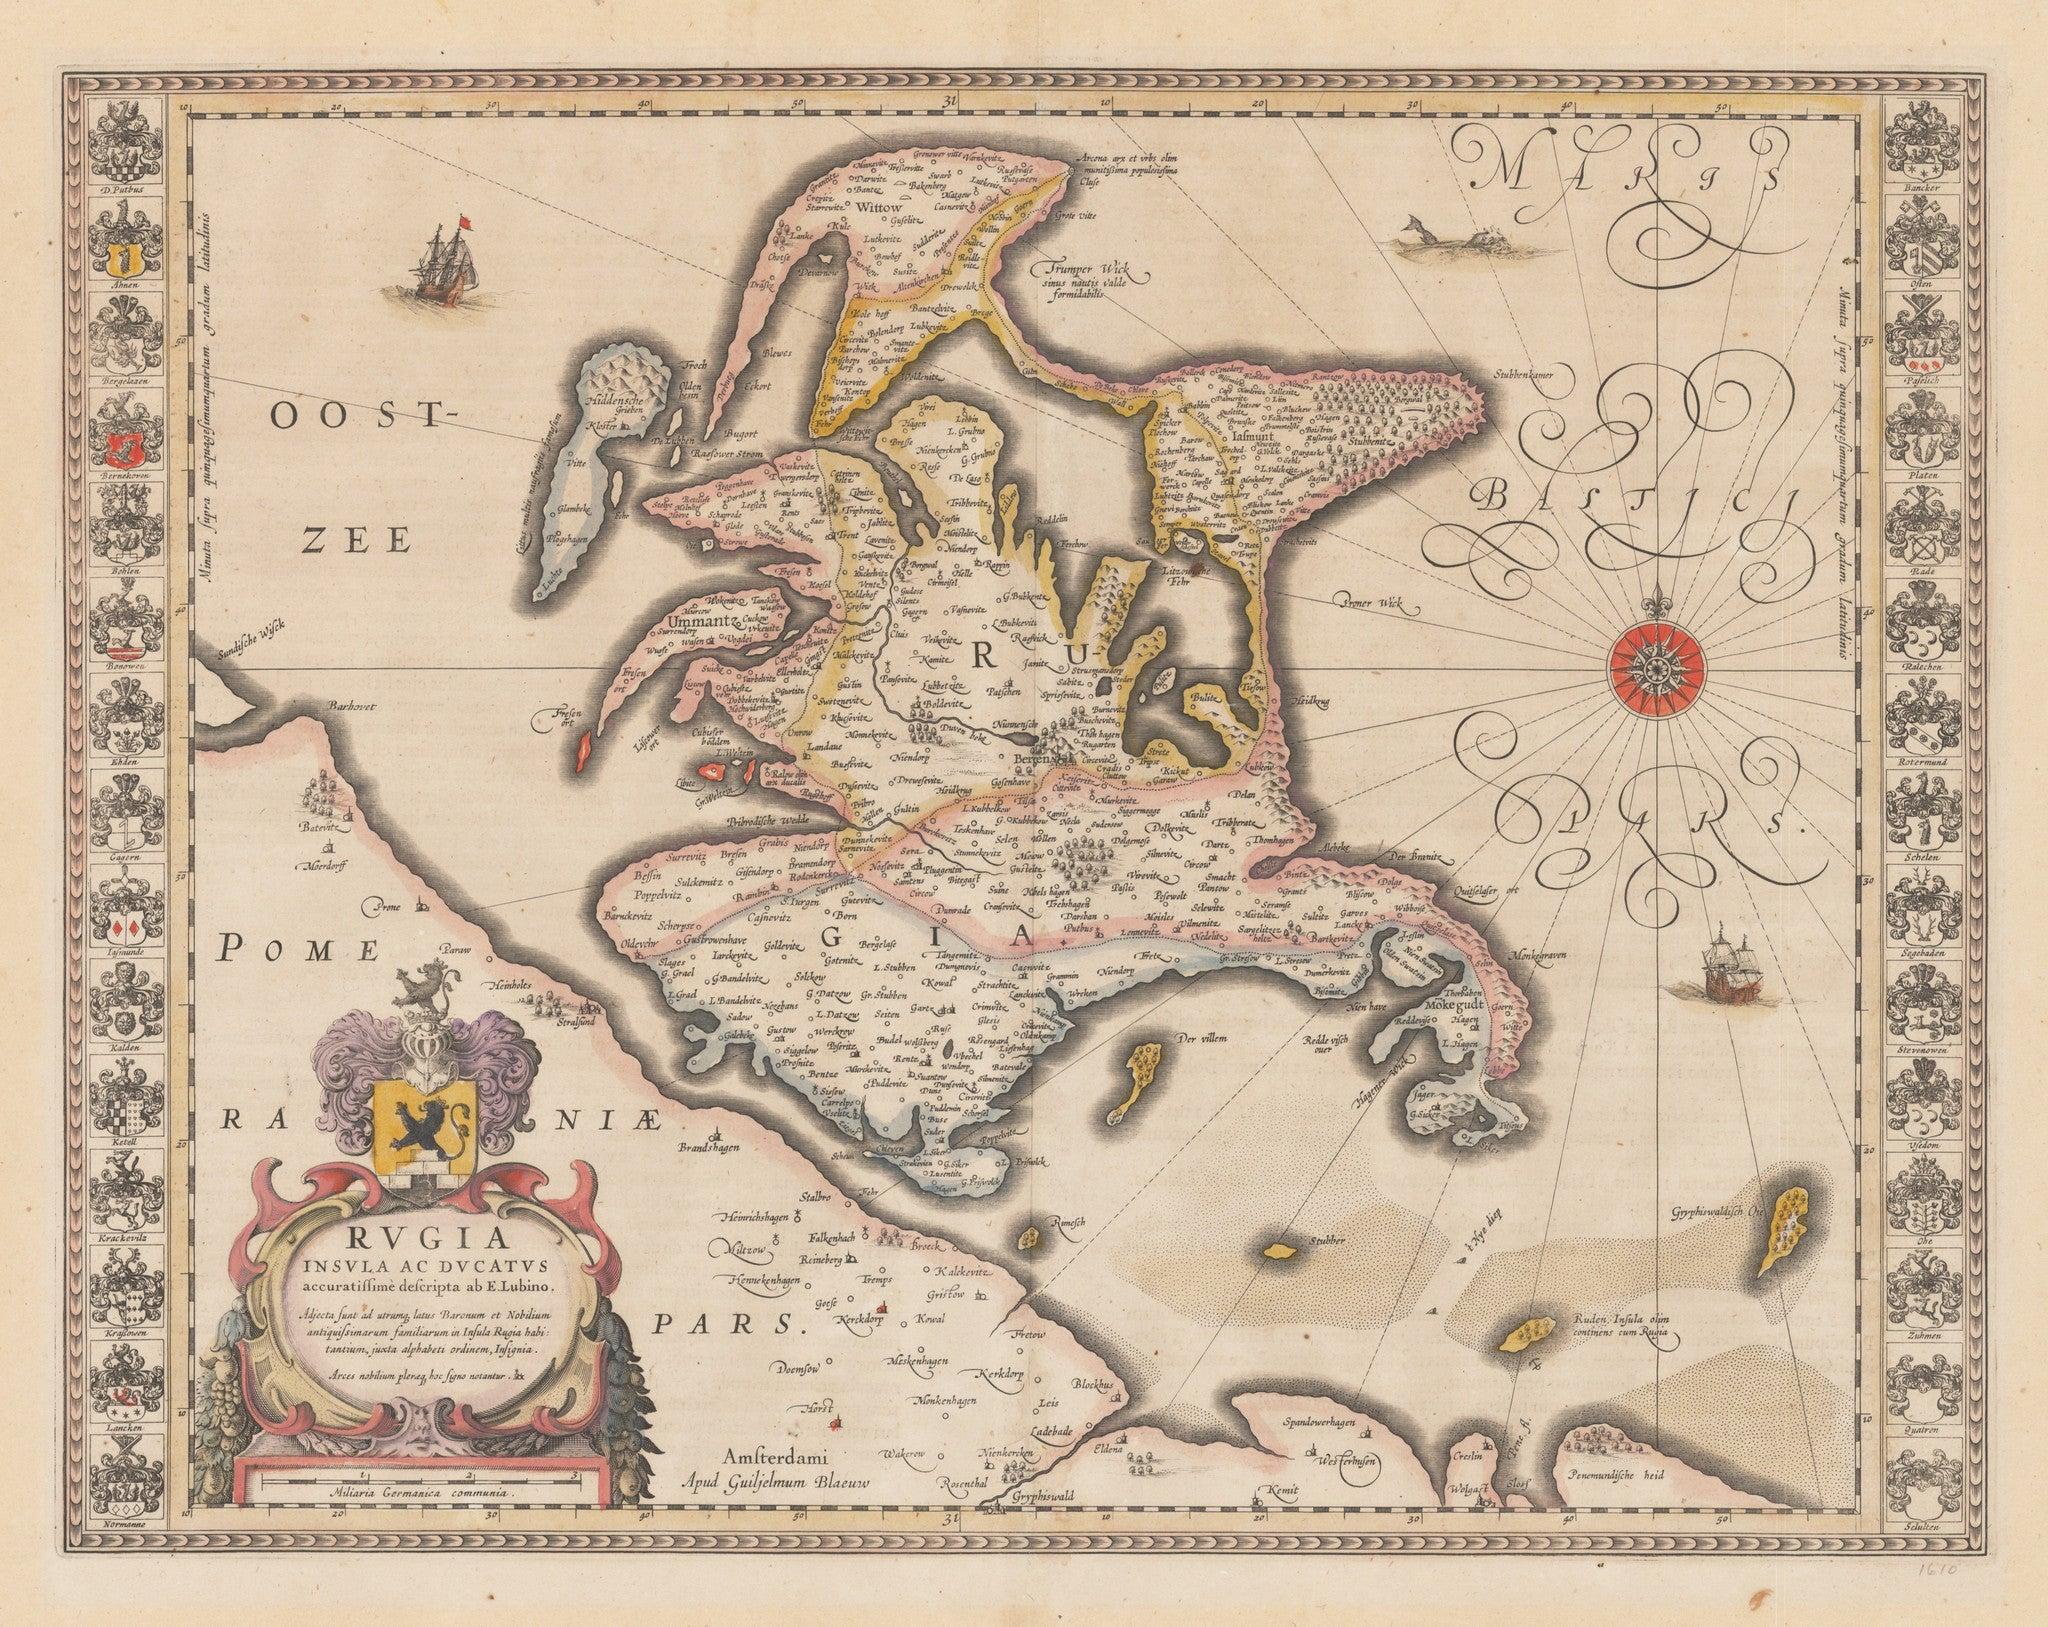 Authentic Antique Map: Rugia Insula ac Ducatus accuratissime descripta ab E. Lubino By: Willem Blaeu Date: 1631 – 1635